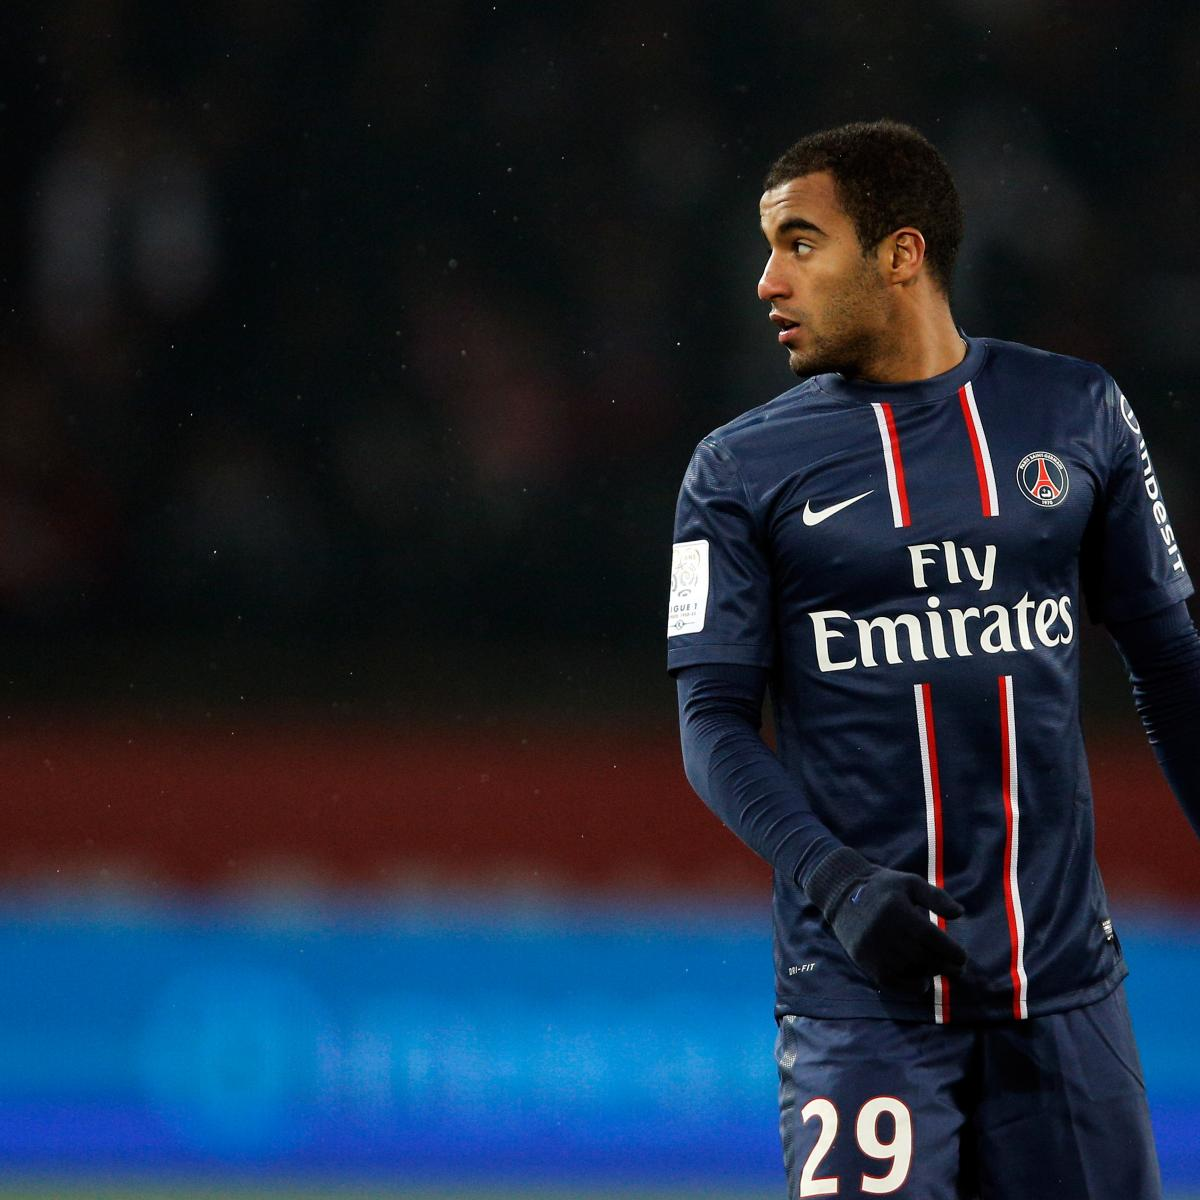 Tottenham Sign Lucas Moura From Paris Saint Germain: What If Manchester United Had Signed Lucas Moura, Eden